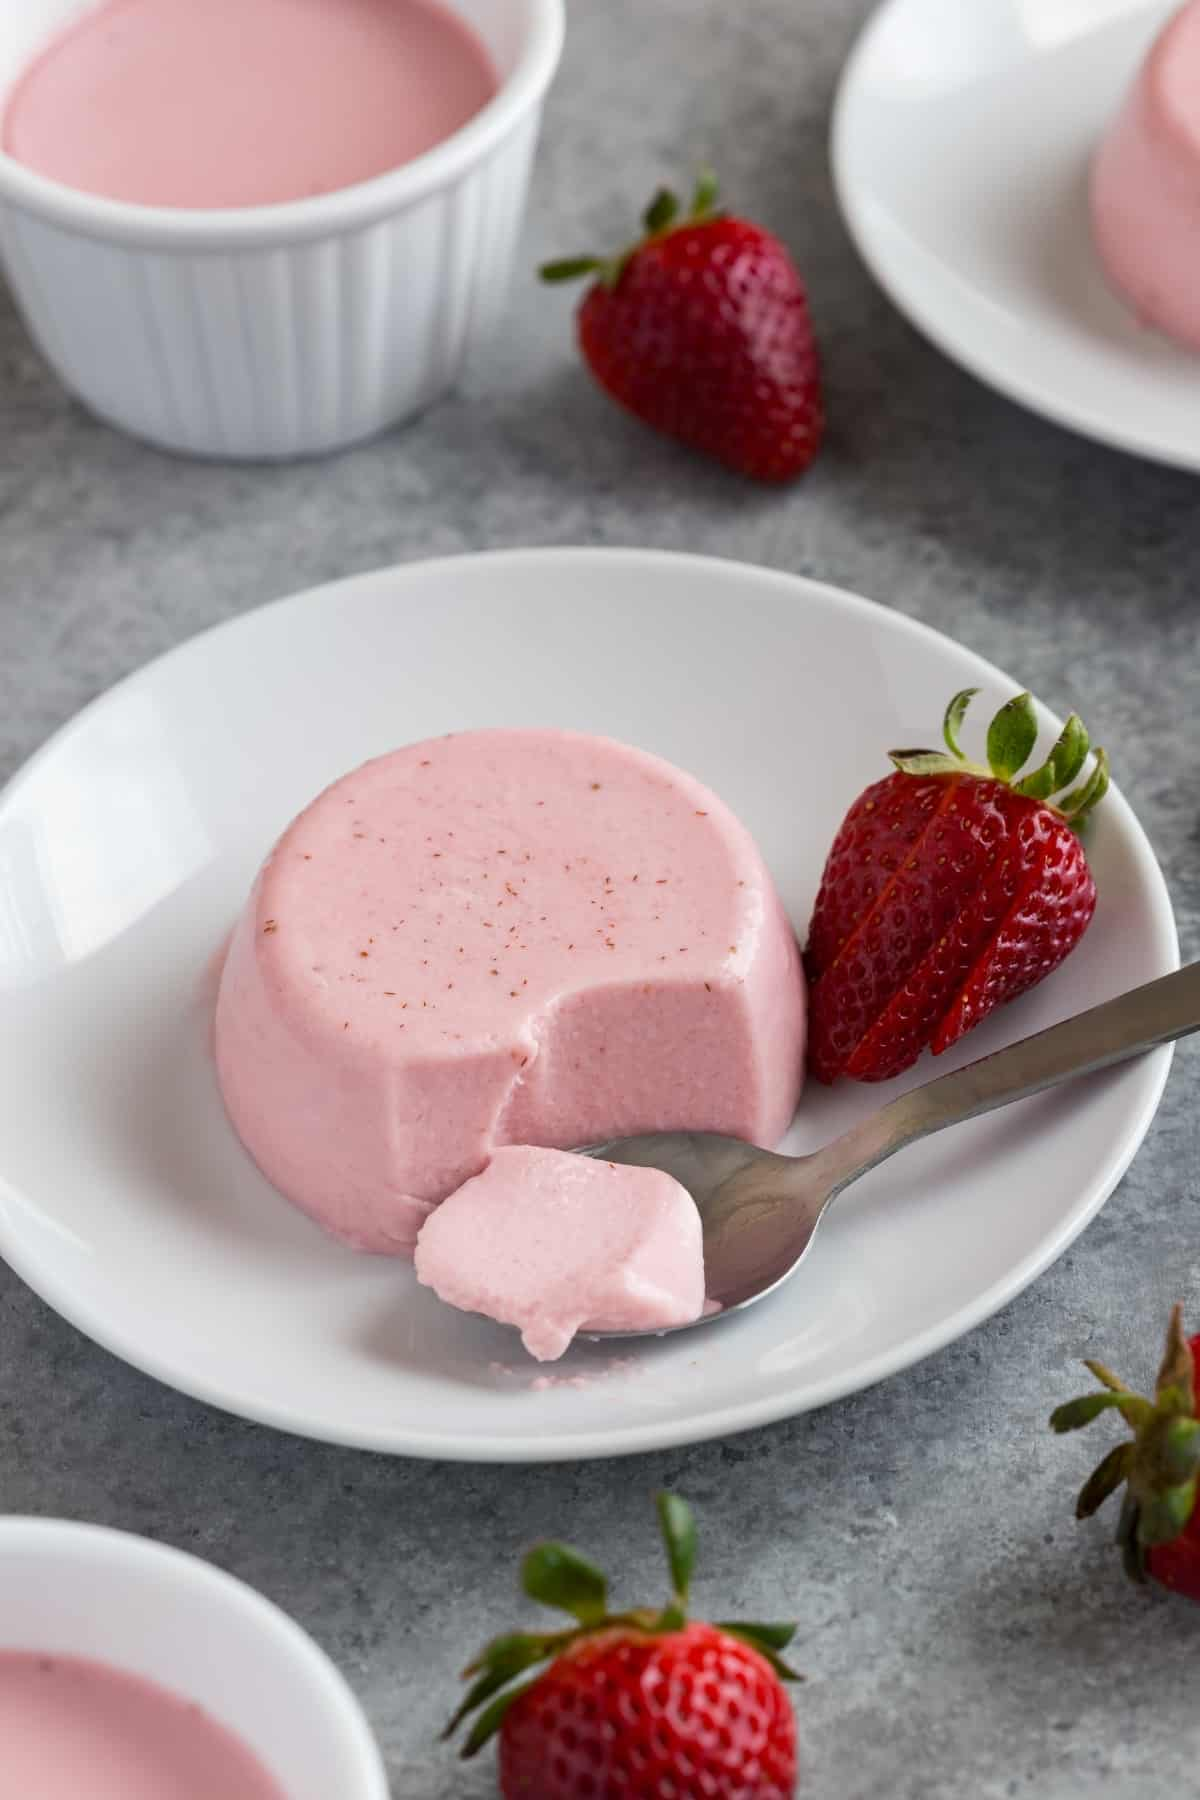 Creamy strawberry panna cotta on a white plate with a spoon taking a bite out.